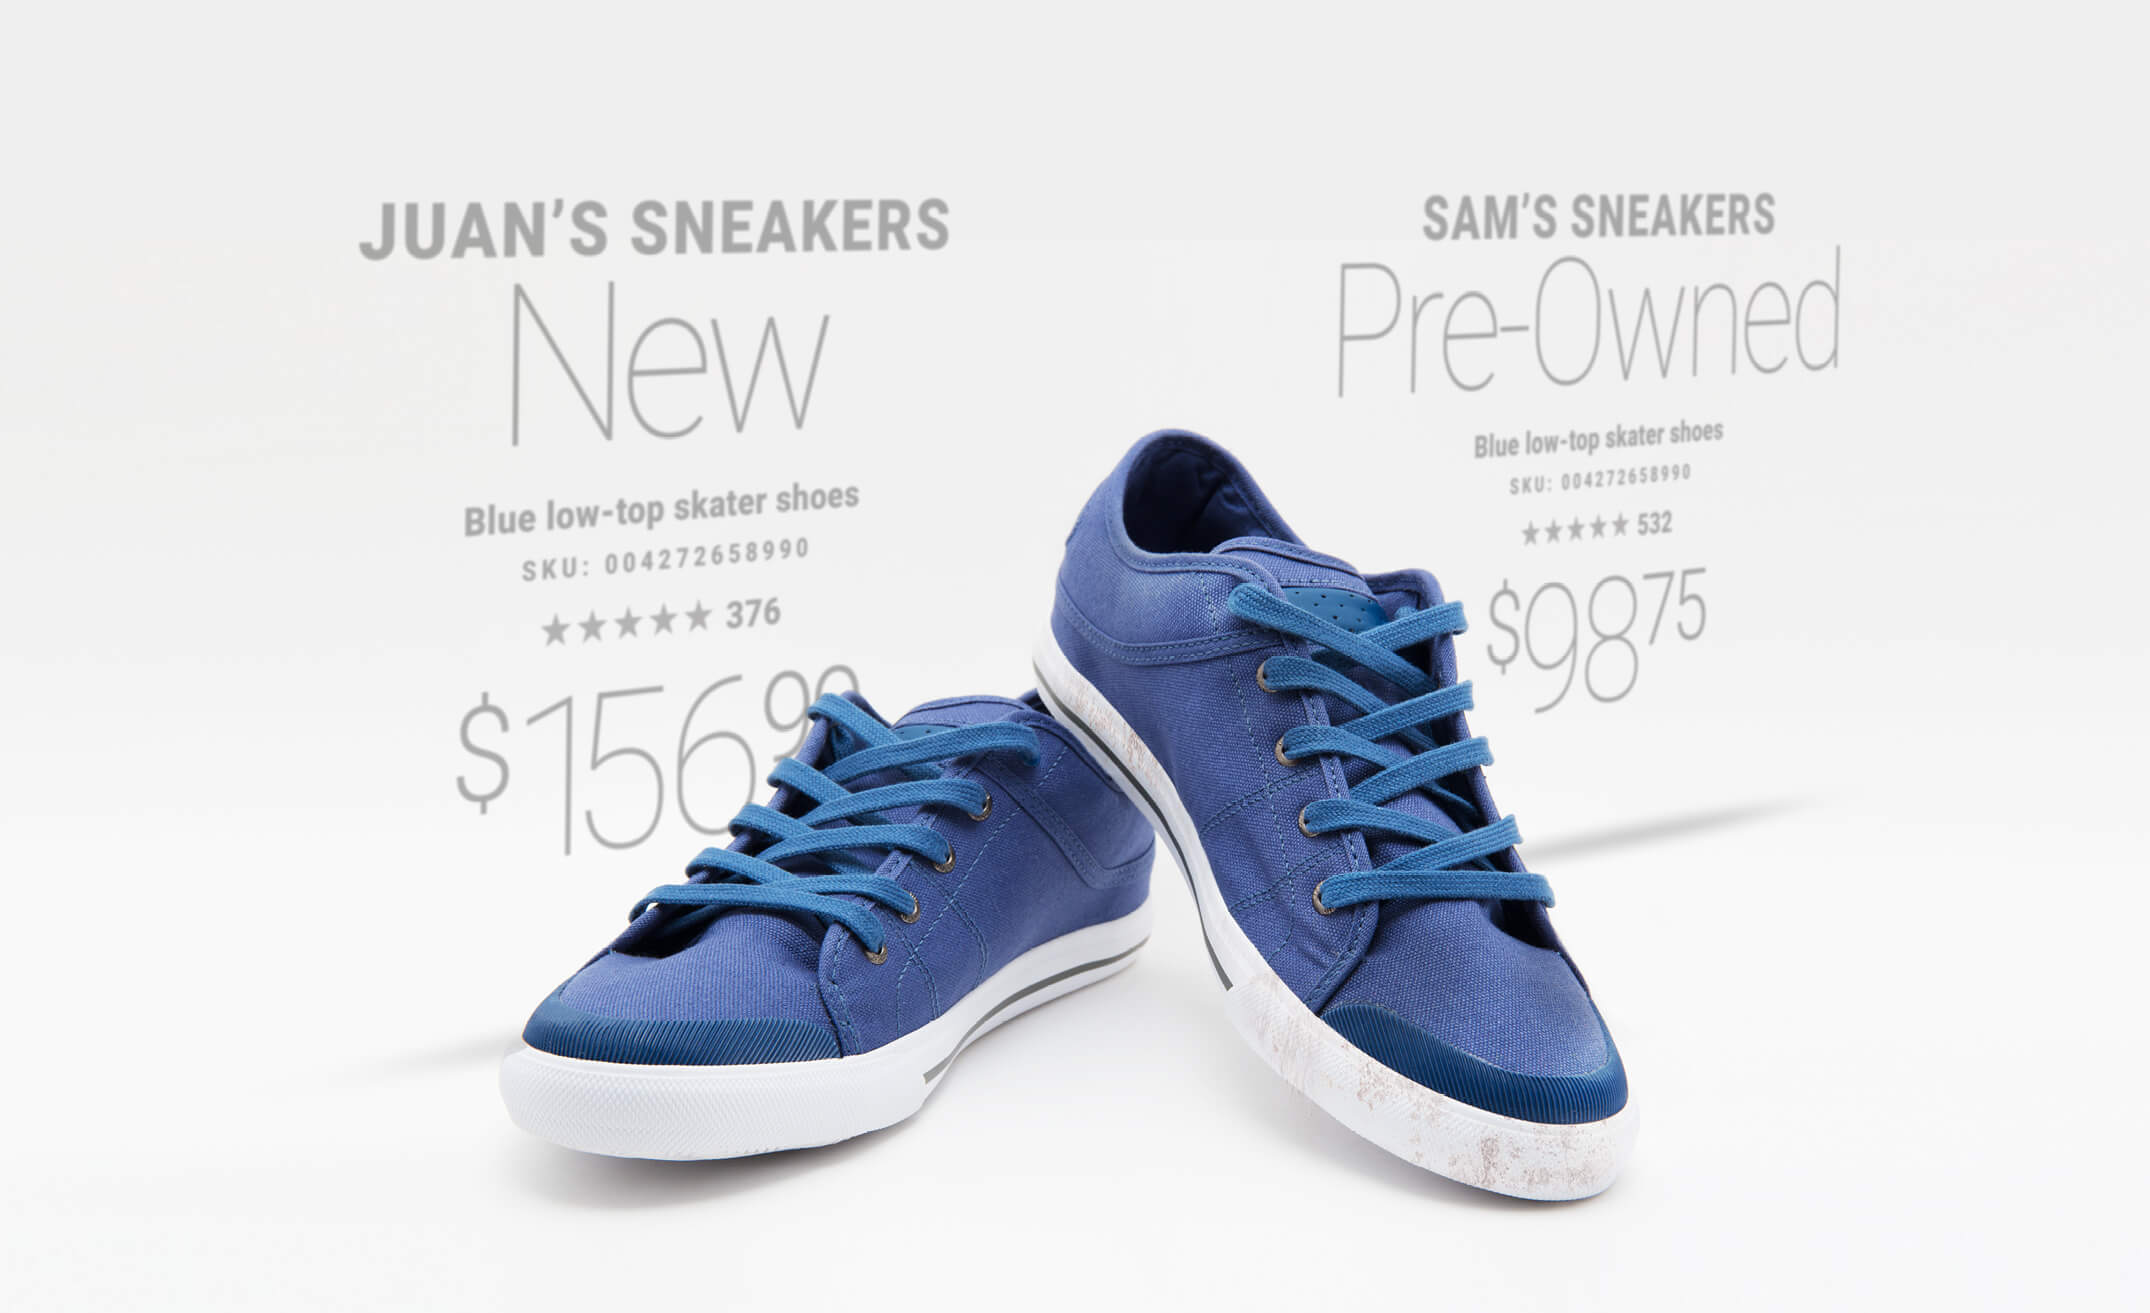 A blue pair of sneakers for sale, new and resale